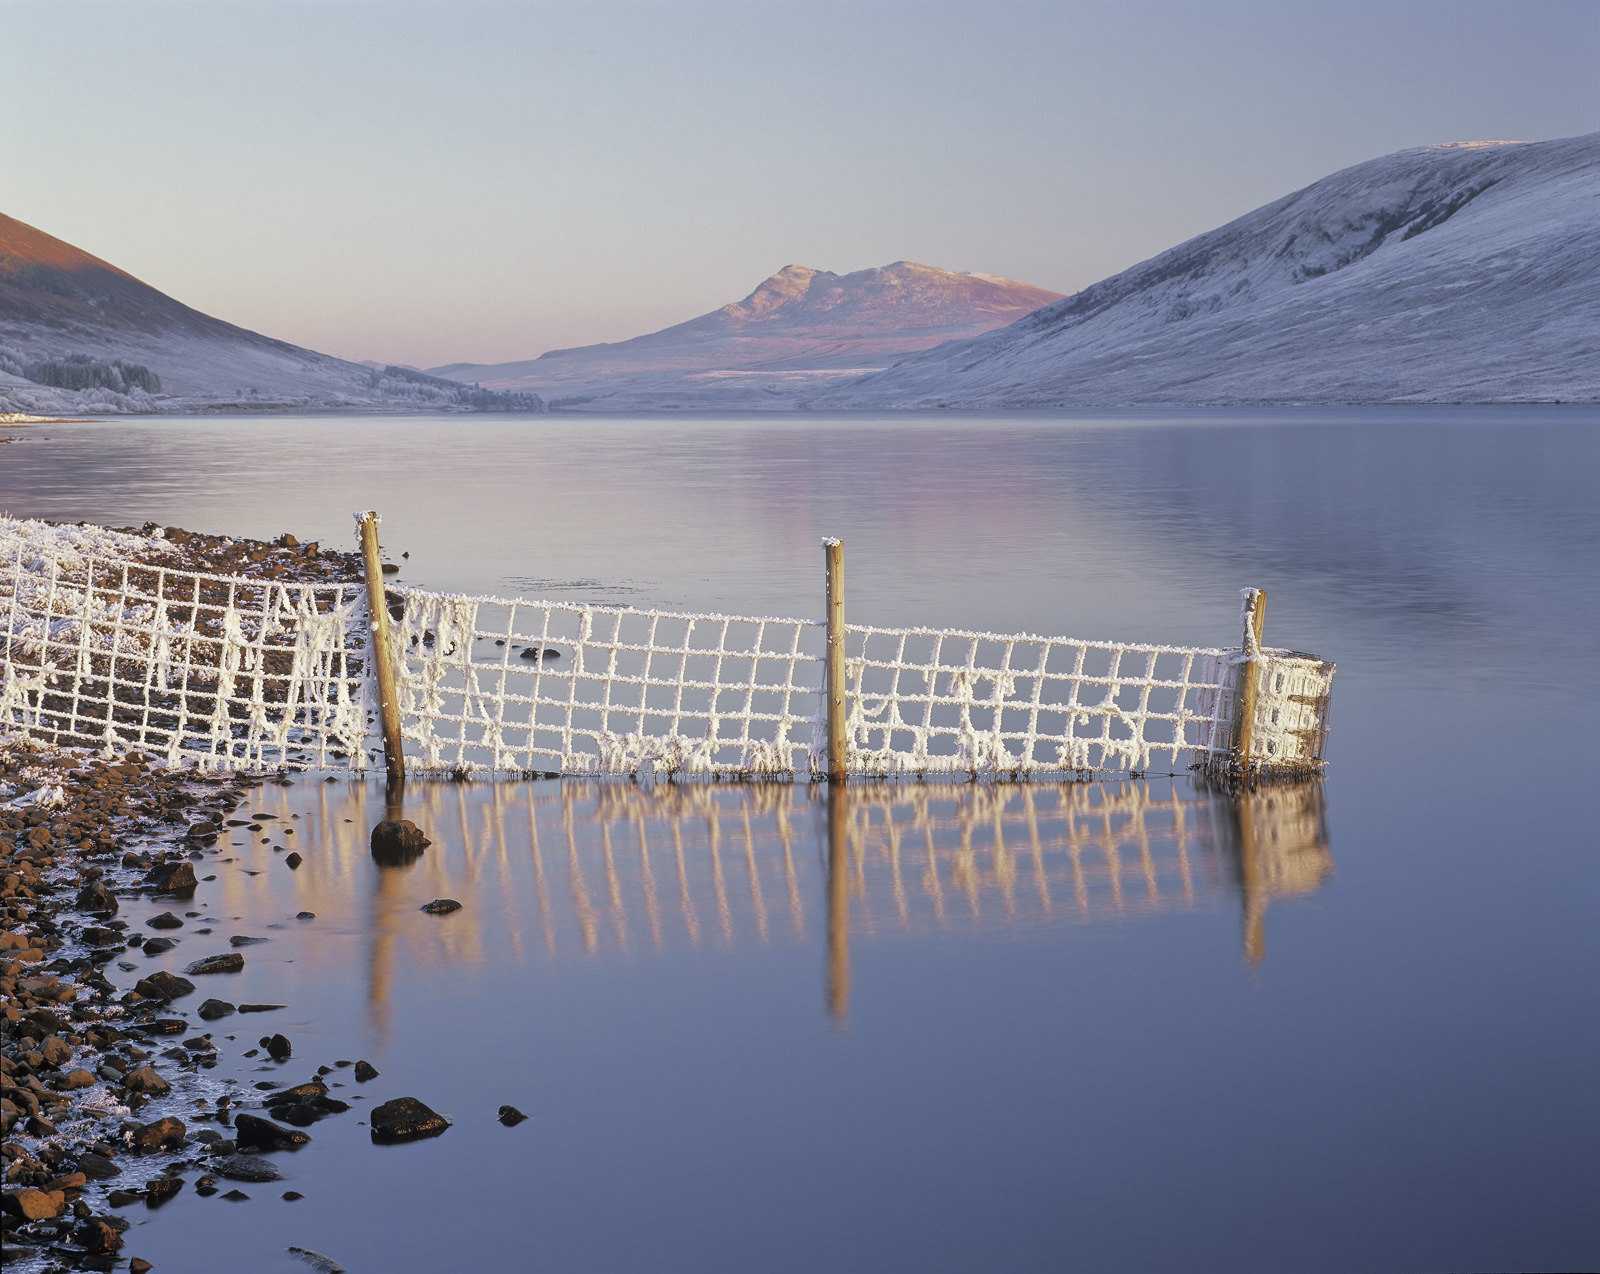 A freezing day at the edge of Loch A Chroisg on route to the impressive snow covered peaks of the Torridon mountains. A...